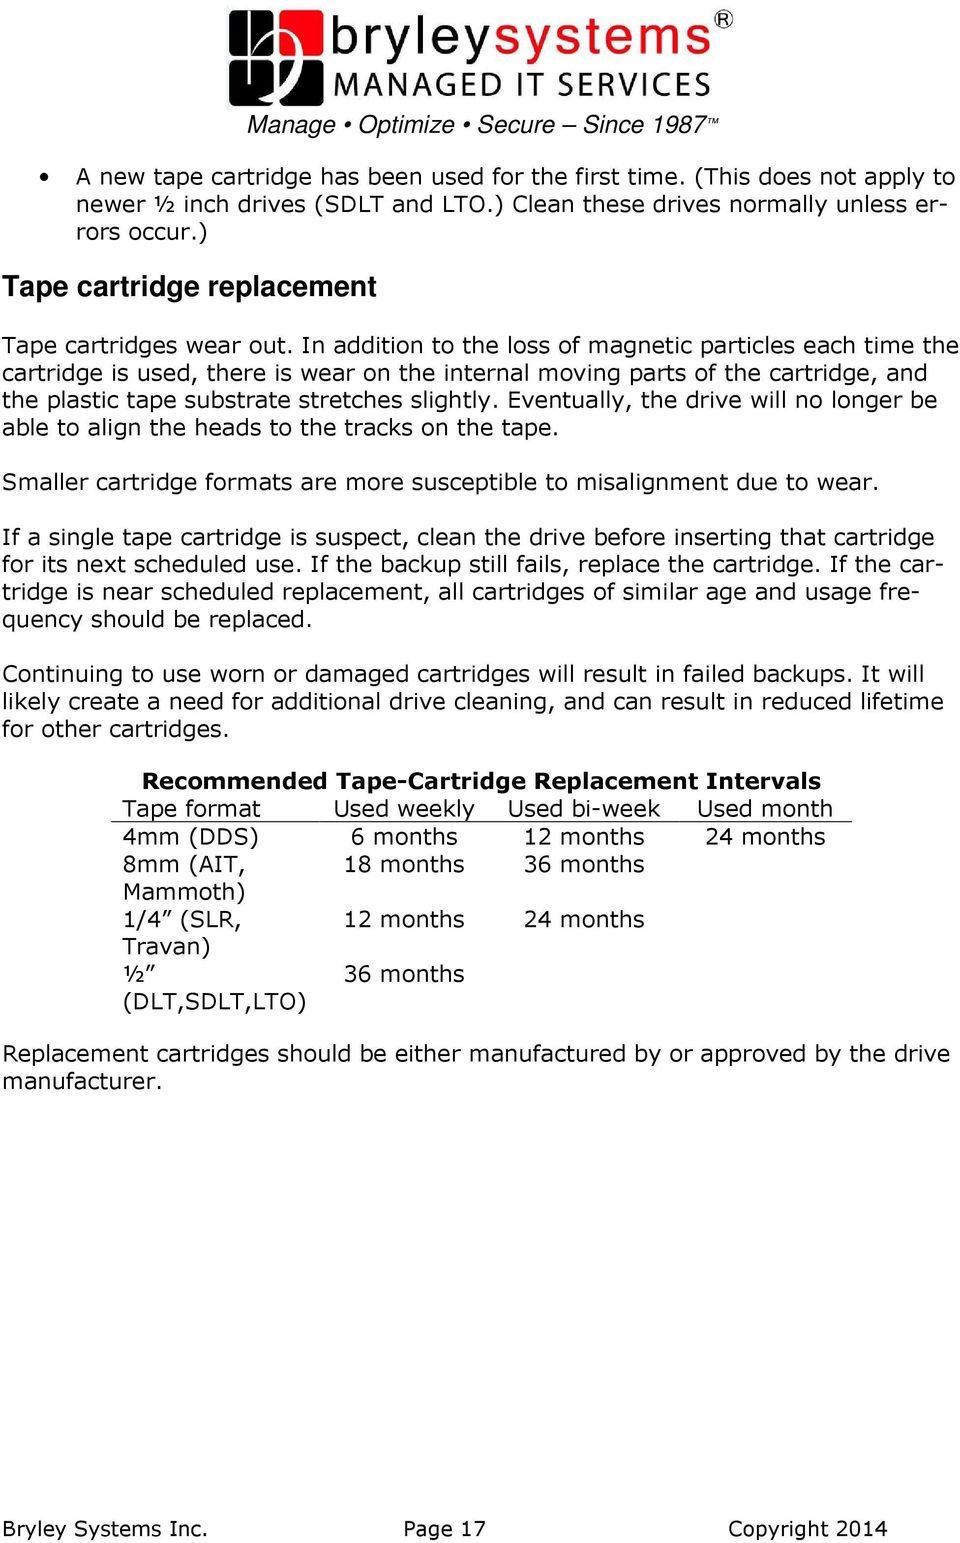 In addition to the loss of magnetic particles each time the cartridge is used, there is wear on the internal moving parts of the cartridge, and the plastic tape substrate stretches slightly.